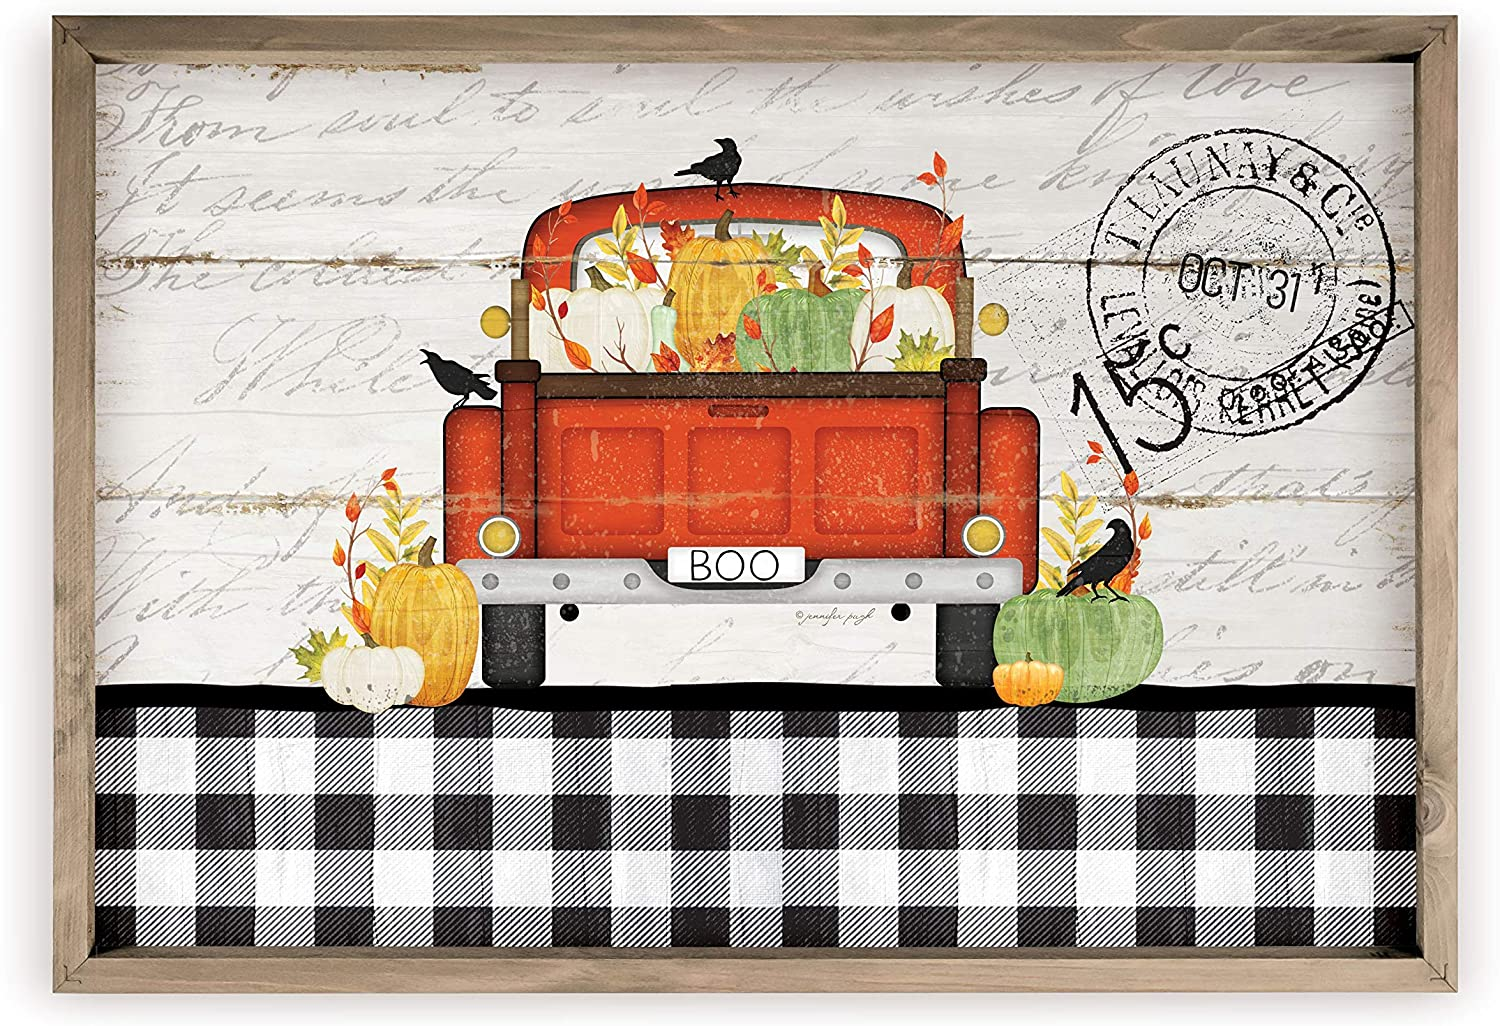 Boo Antique Truck and Pumpkins Rustic Wood Sign 12x18 (Frame Included)